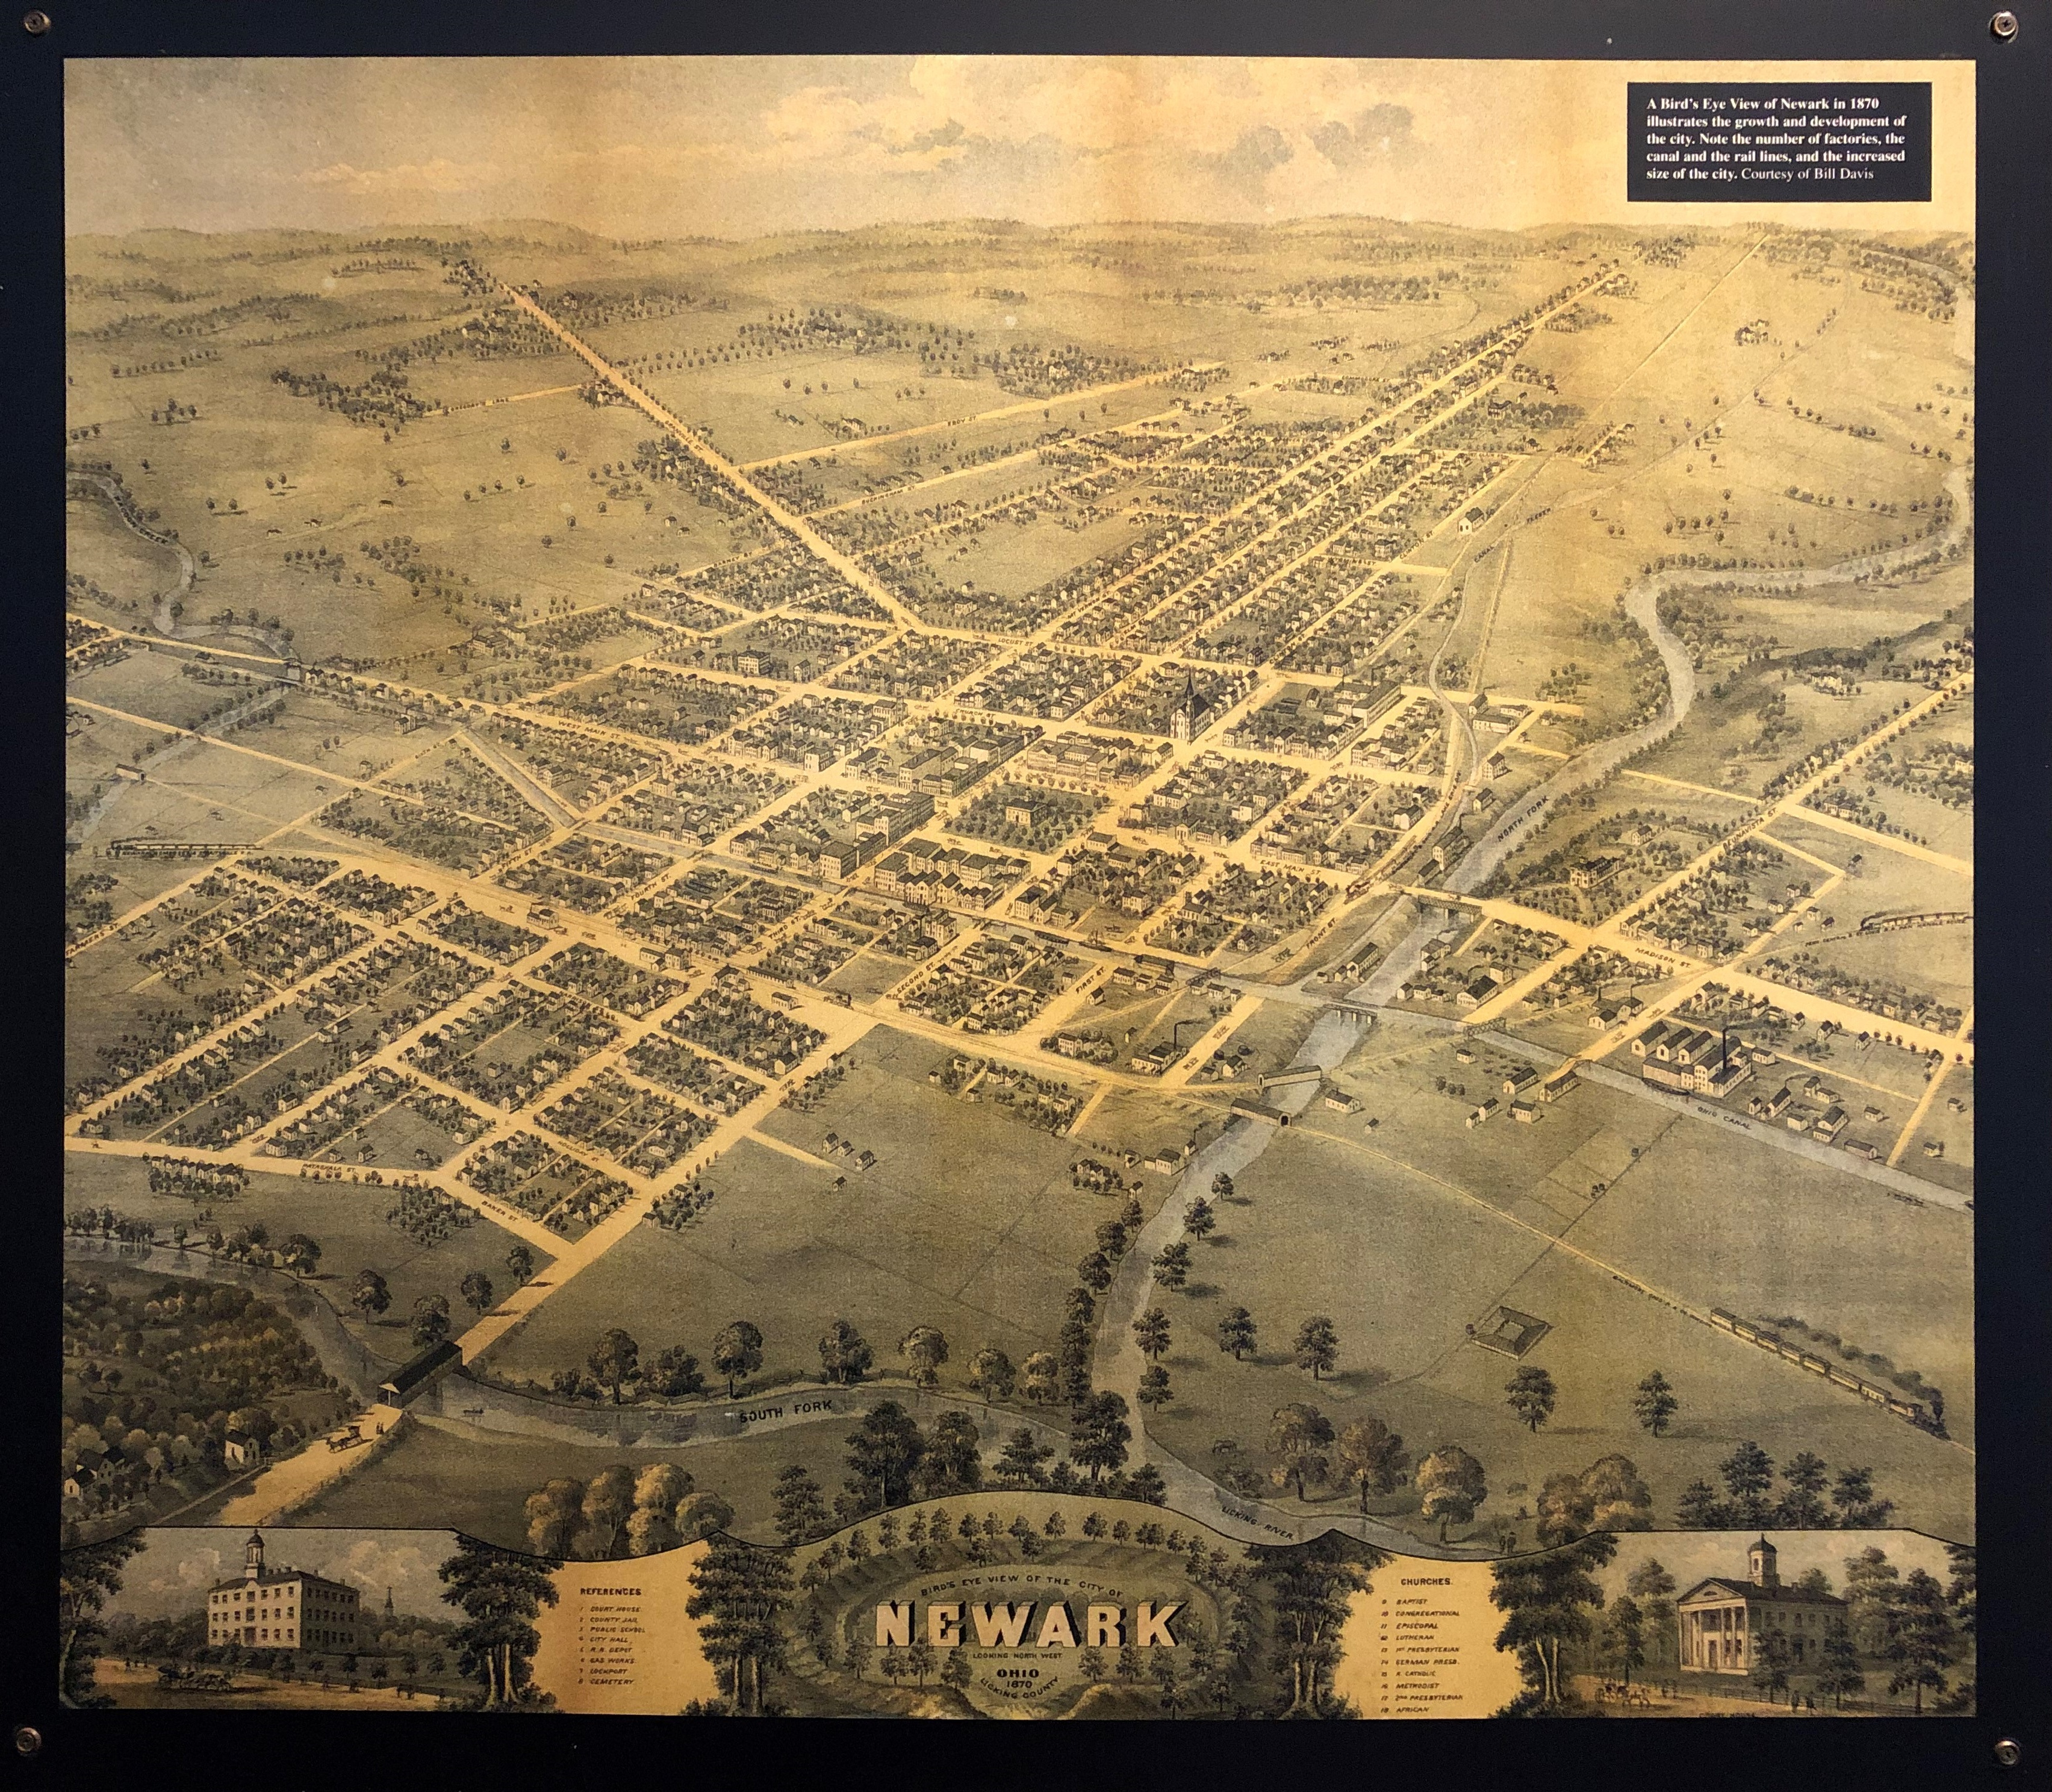 As you can see from this 1870 map of Newark, much of what is now part of the city was once open farmland. Much of the city's economy was associated with agriculture.